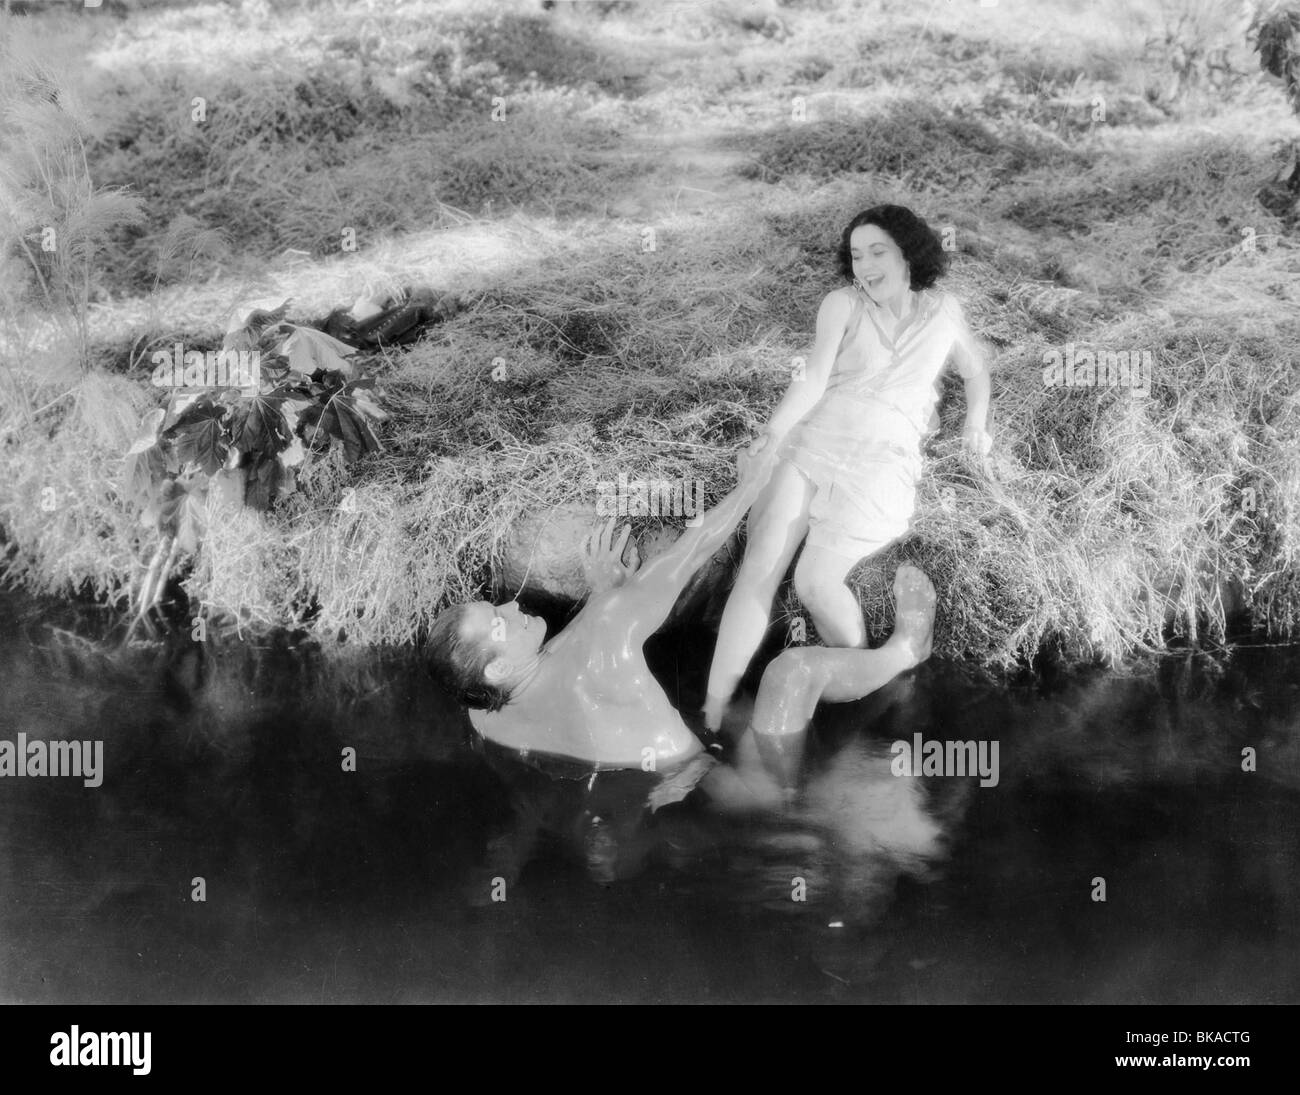 Photograph of naked couple